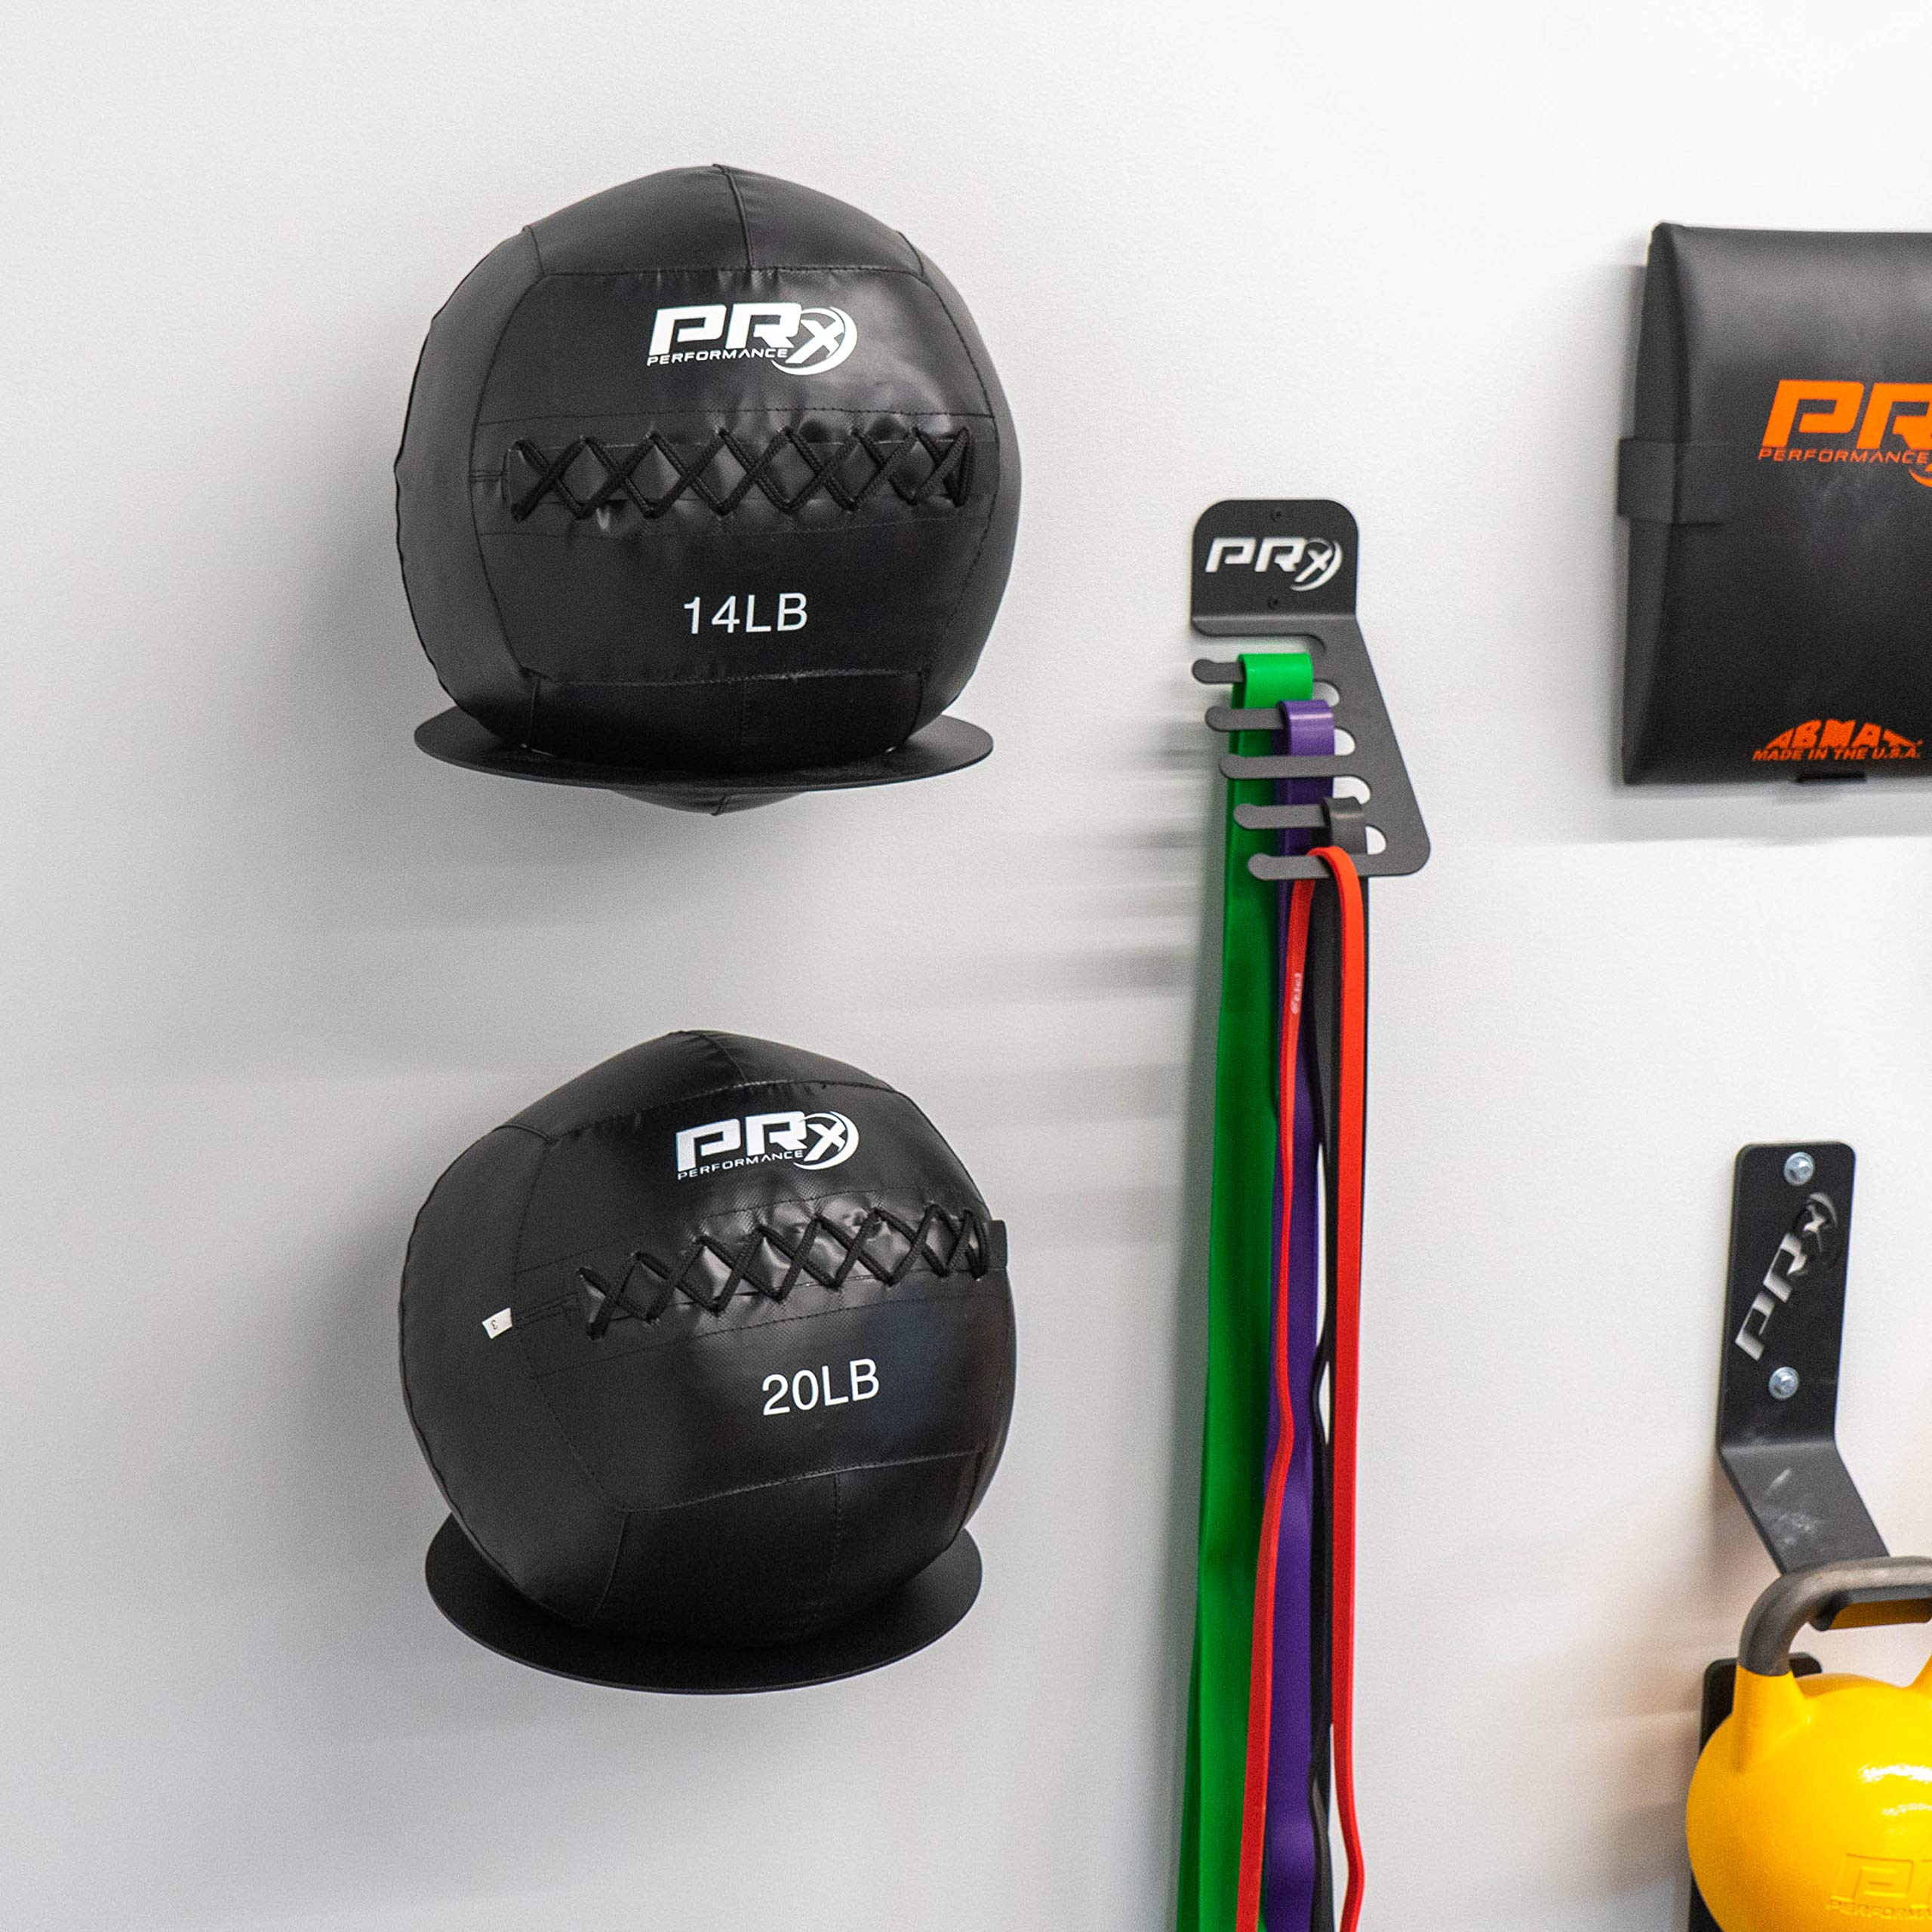 PRx Performance Medicine Ball Storage, Exercise Ball Holder, Wall Mounted, Powder Coated, Space Saving Home Gym by PRx Performance (Image #5)